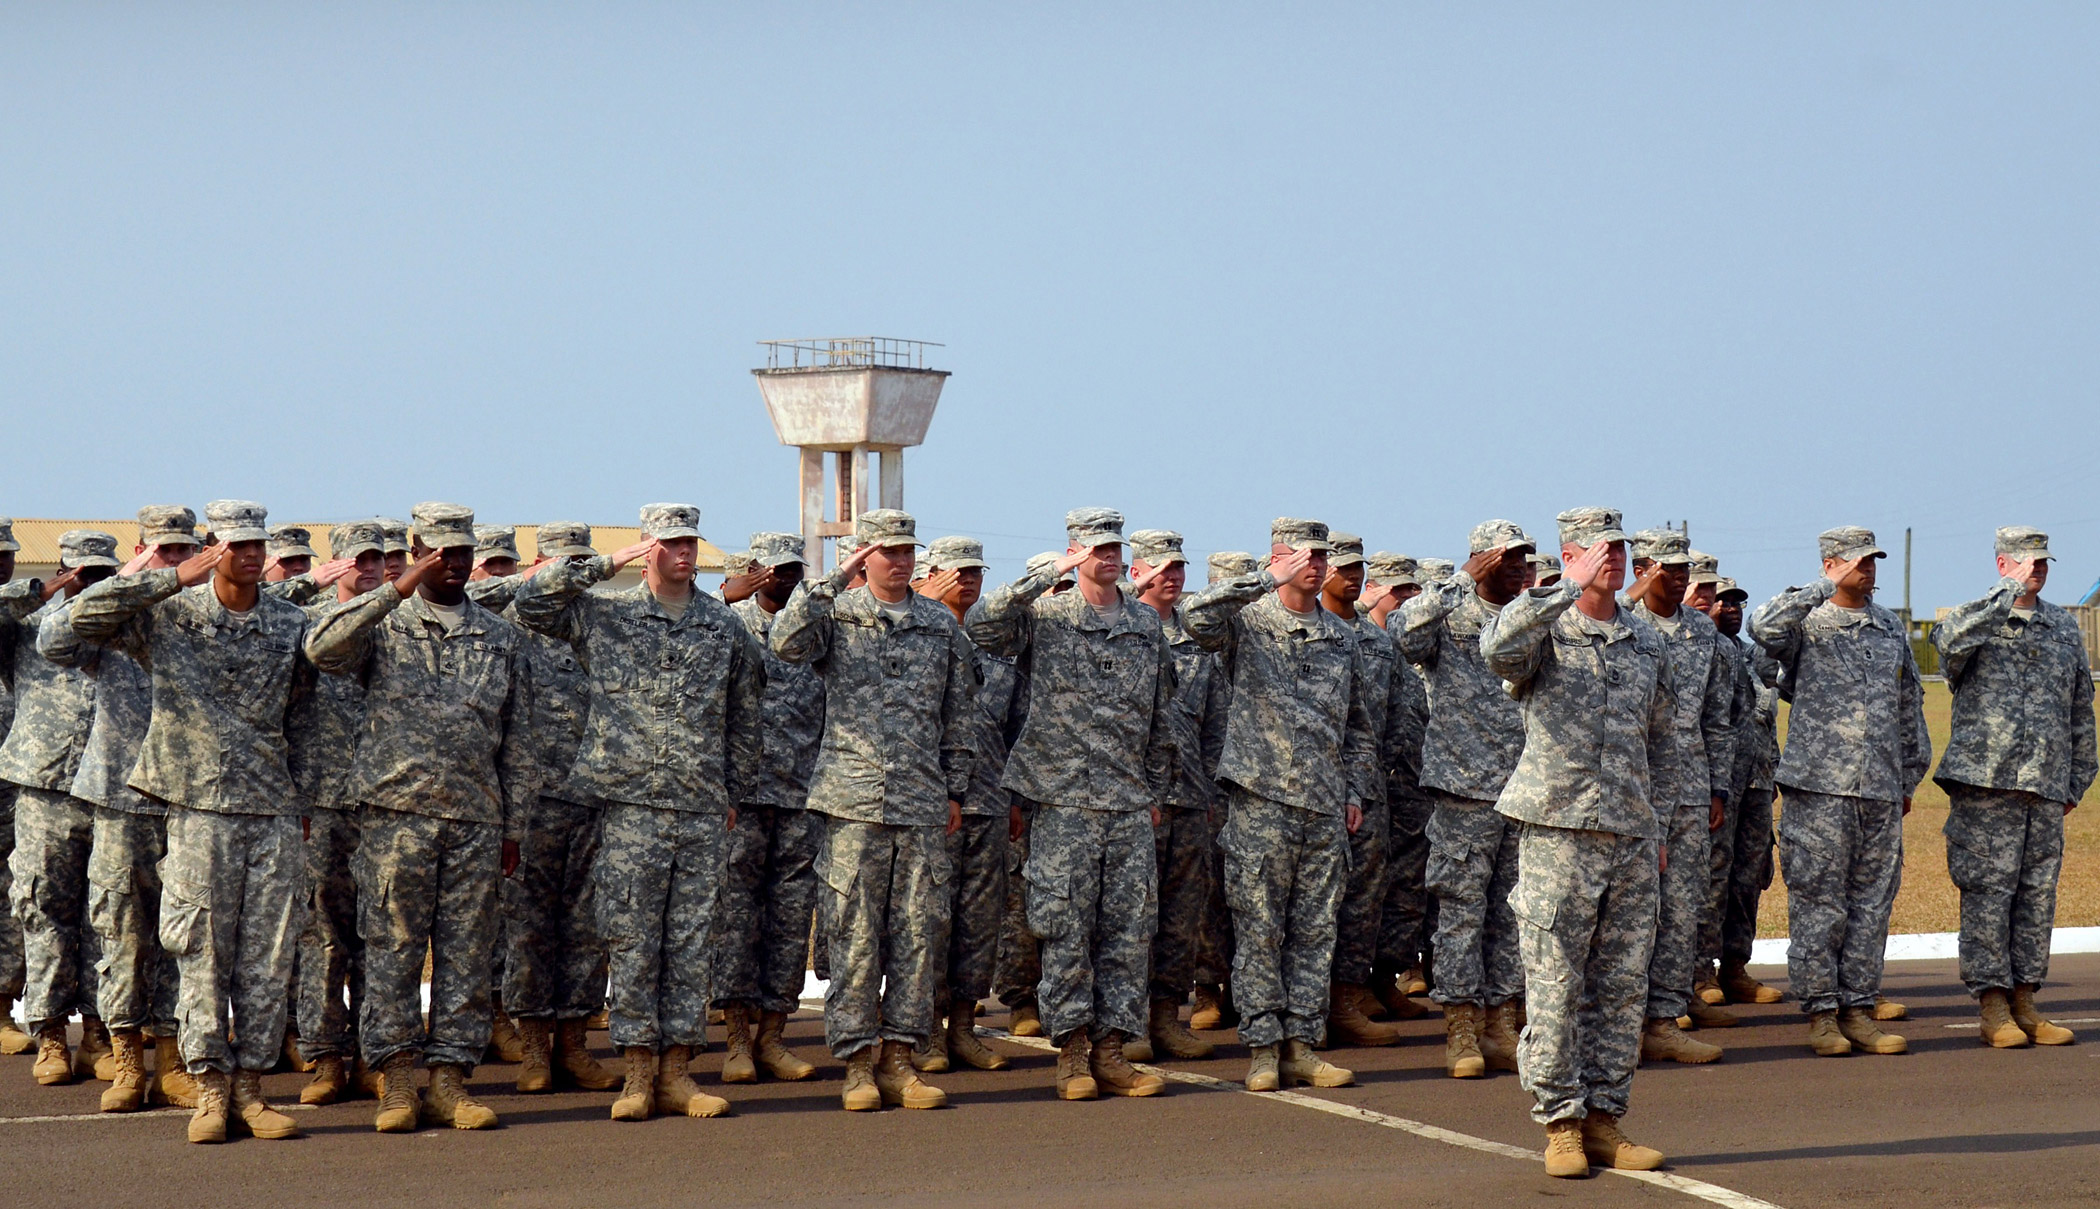 US soldiers of the 101st Airborne Division salute during the ceremonial folding and stowing of the flag at the Barclay Training Camp in Monrovia on Feb. 26, 2015, marking the end of the  Joint Forces Command United Assistance  mission.